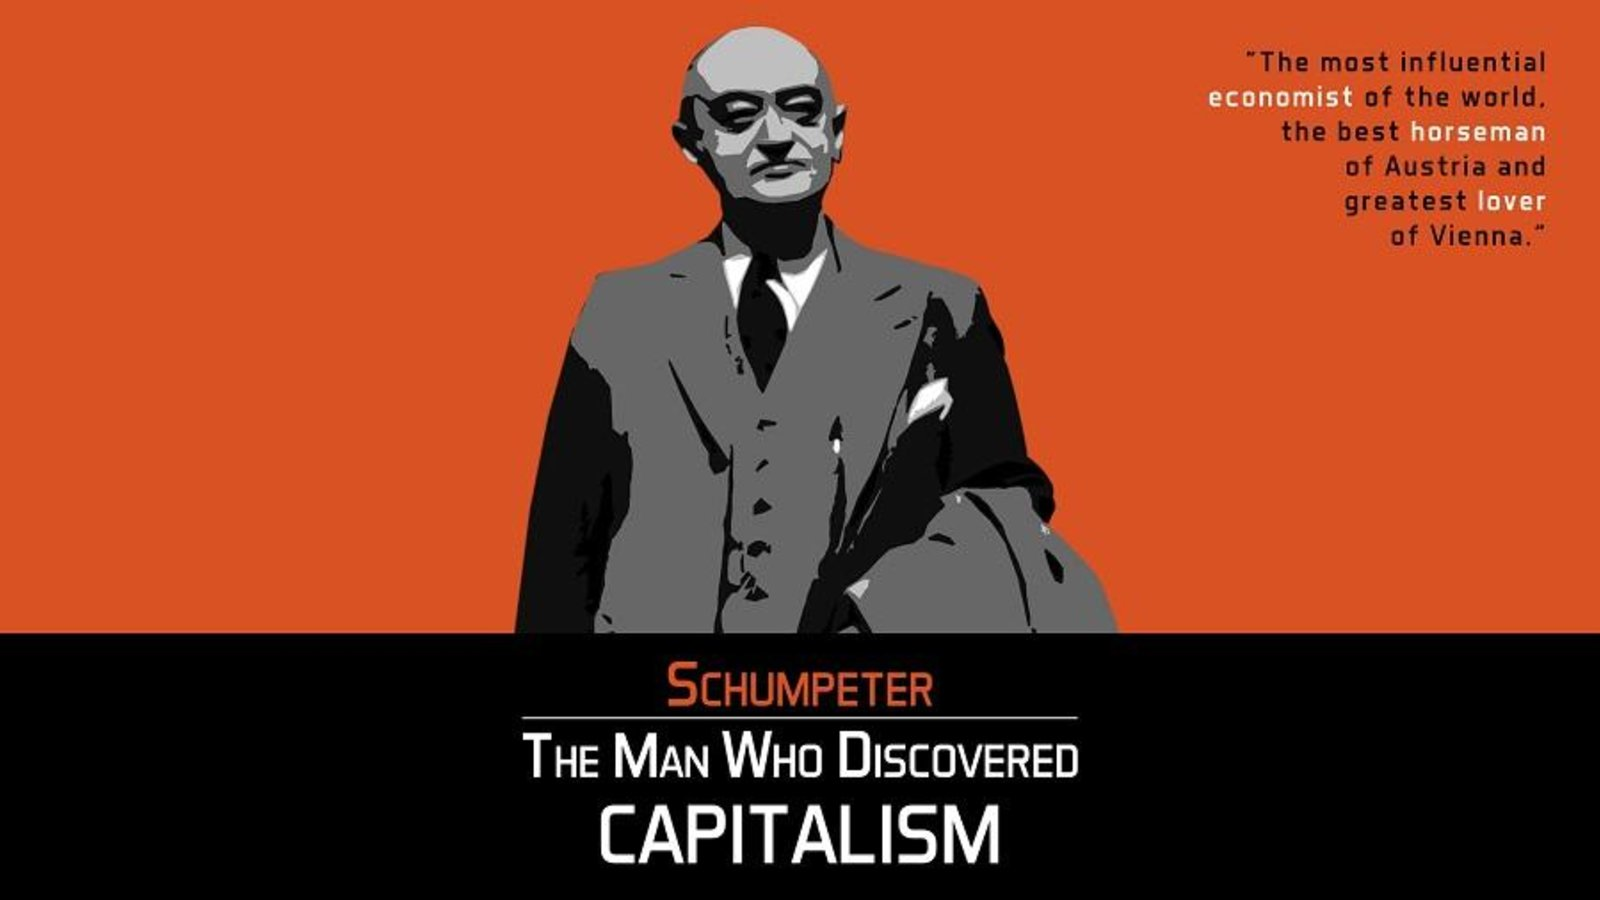 The Man Who Discovered Capitalism - The Life and Ideas of Influential Economist Joseph Schumpeter